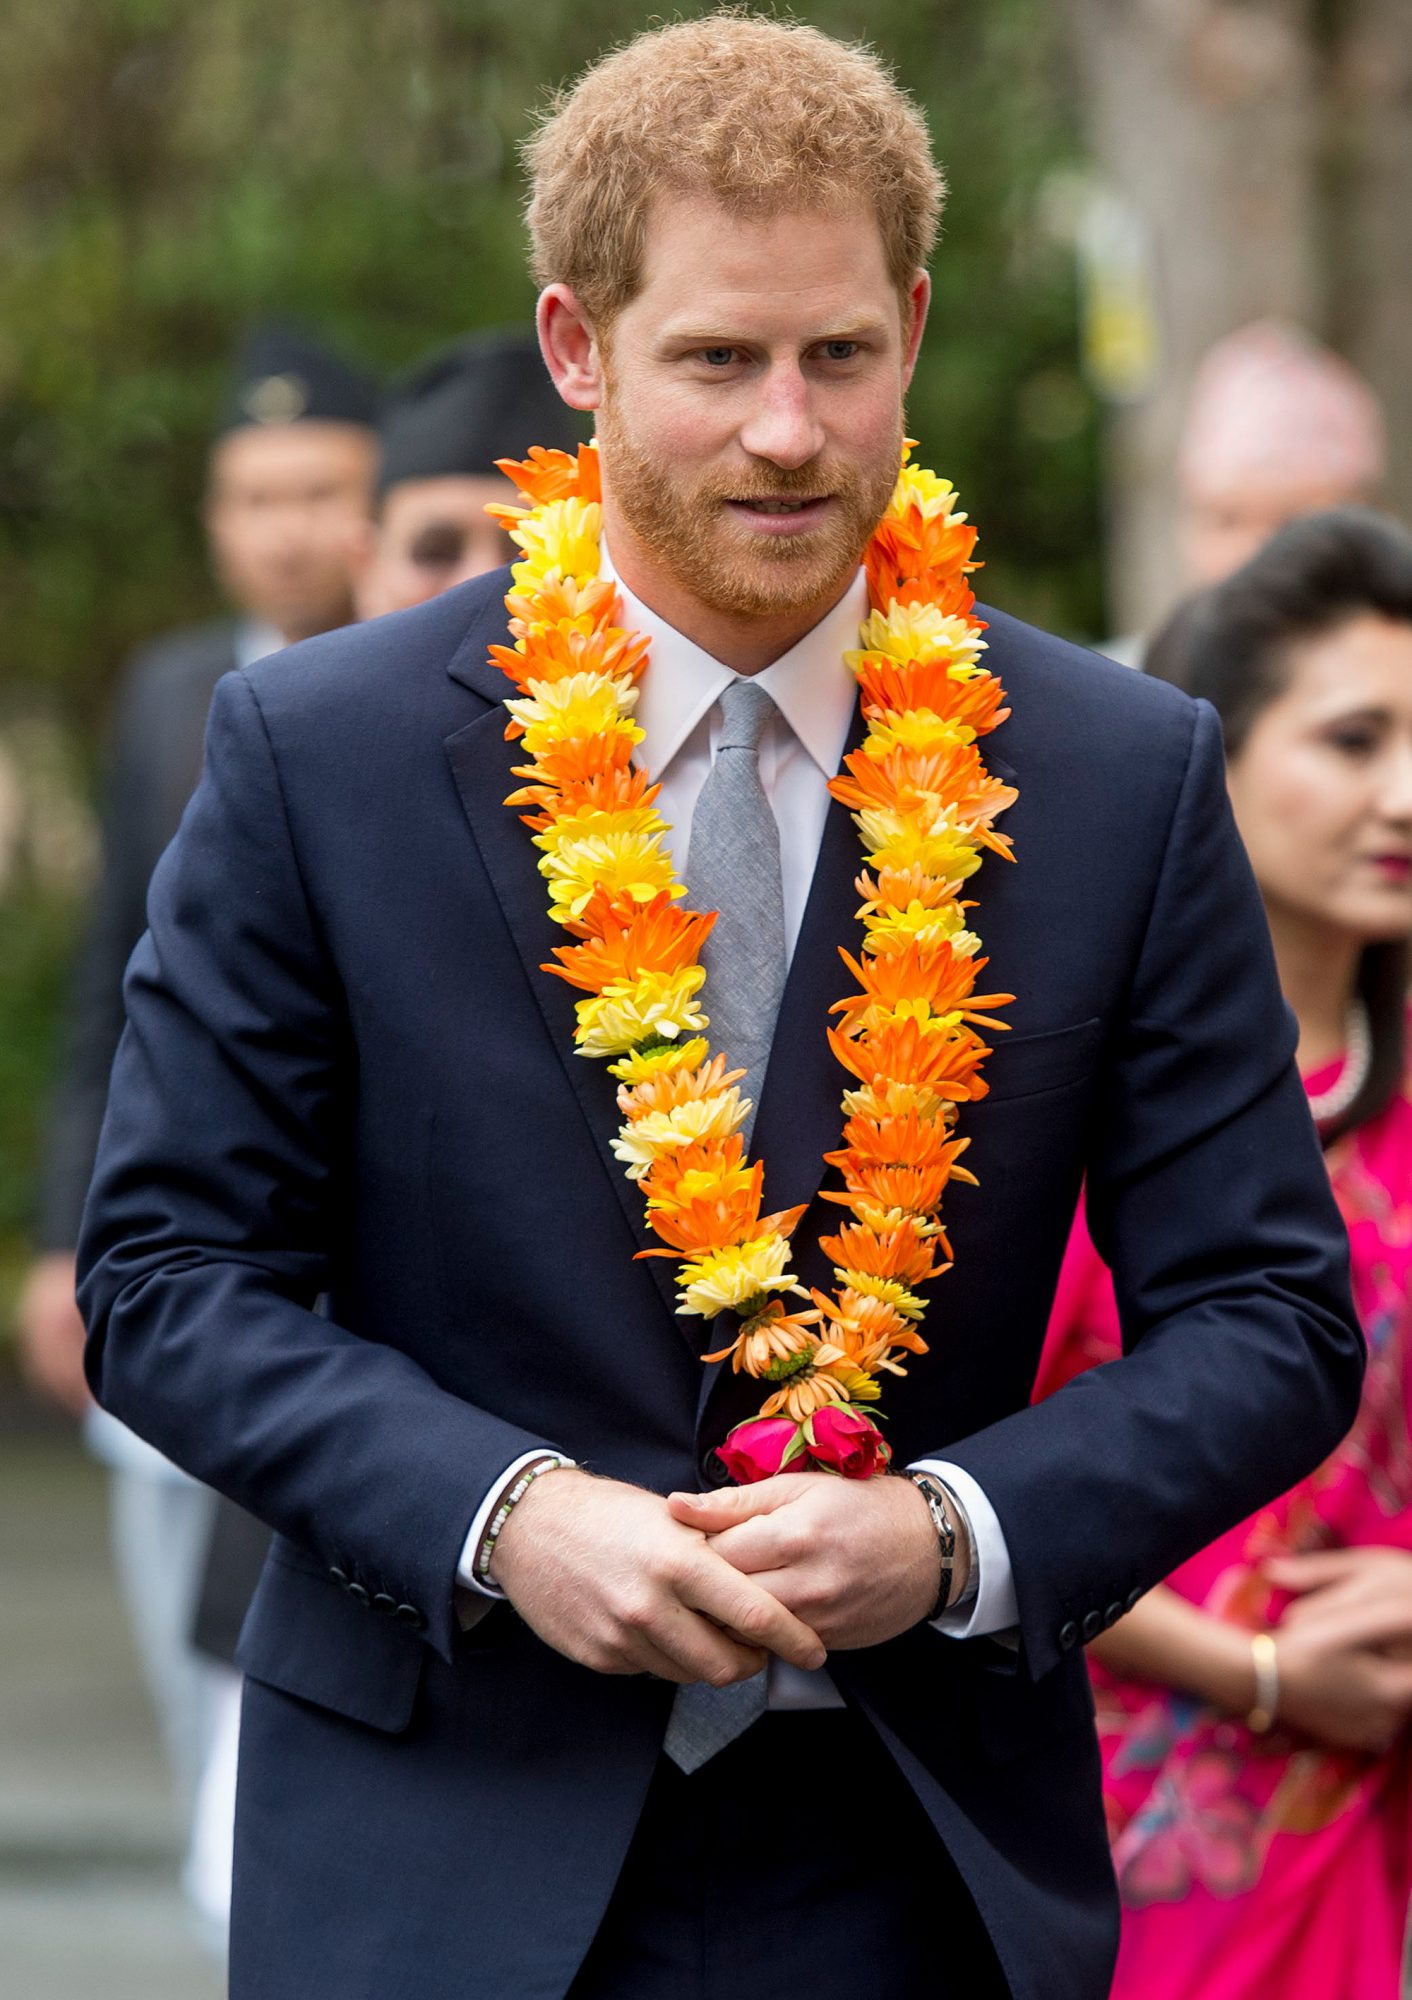 Prince Harry Attends A Ceremony To Celebrate The Bicentenary Of Relations Between The United Kingdom And Nepal